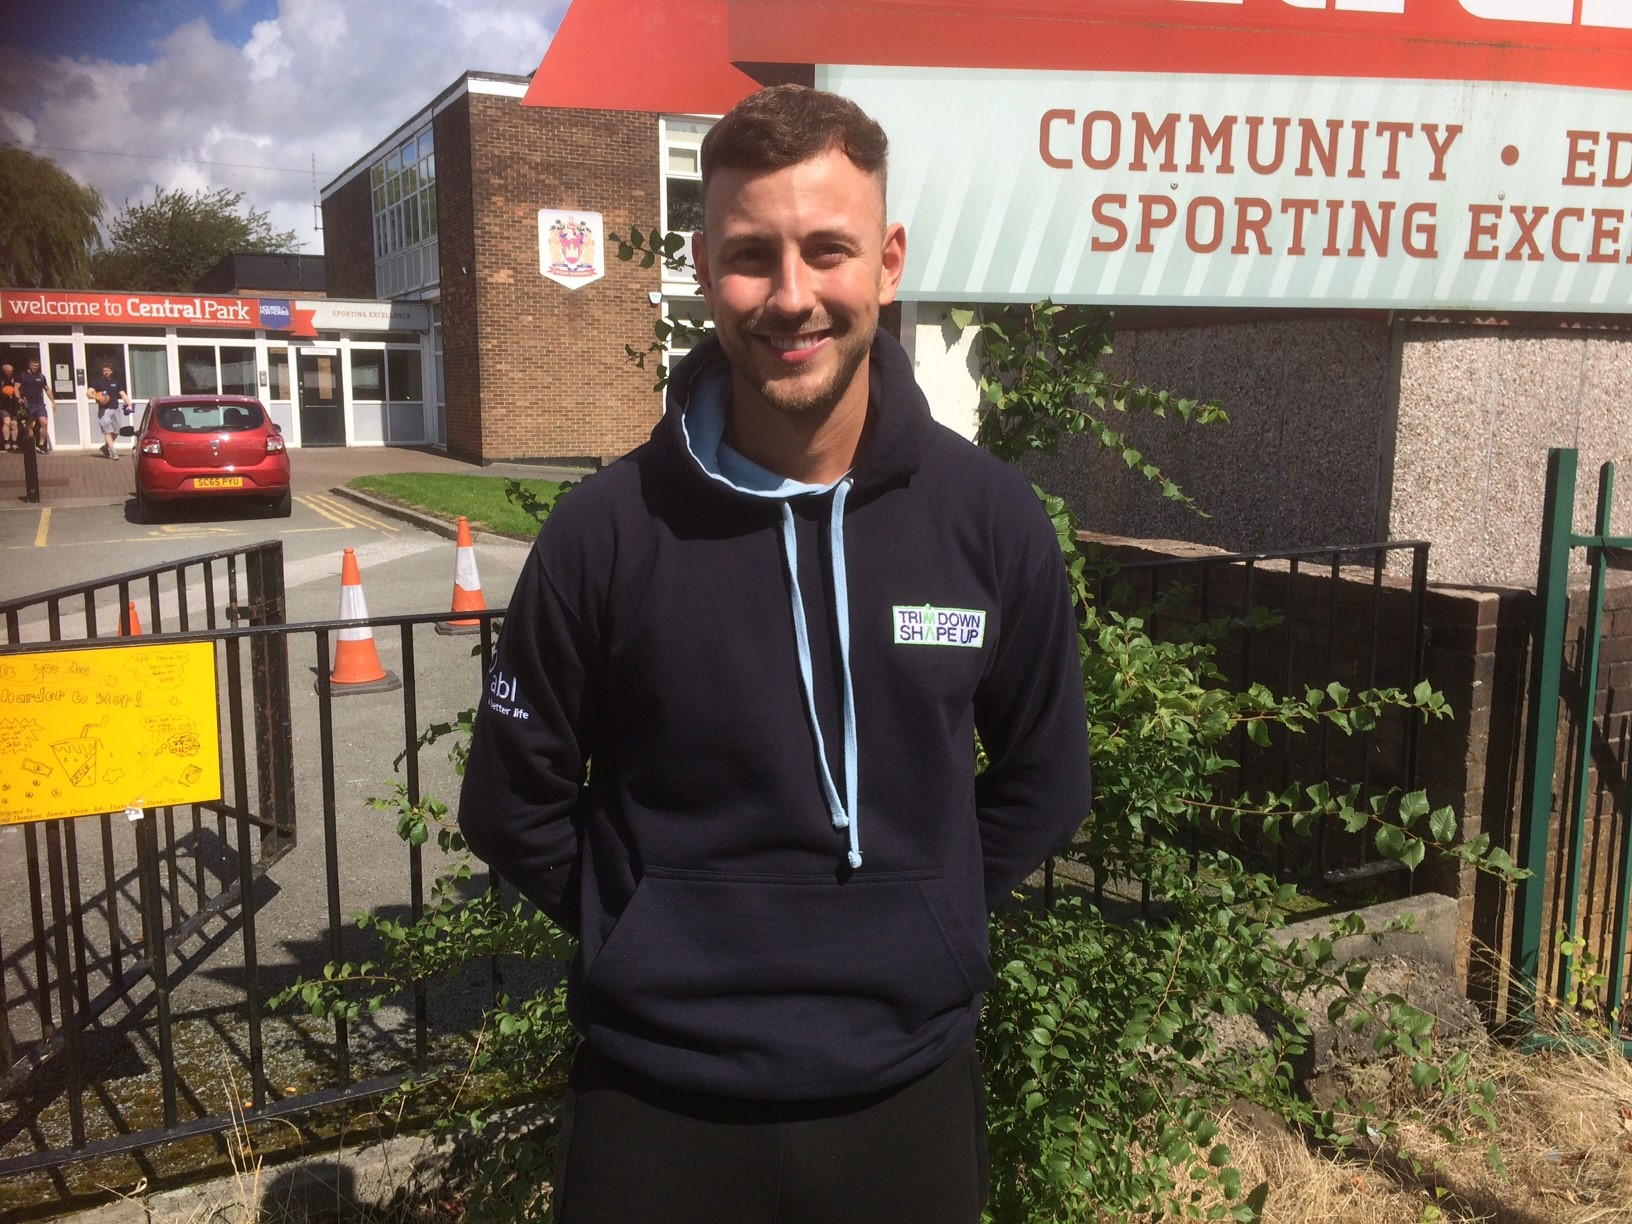 'Volunteering gave me the opportunity to show what I can do'